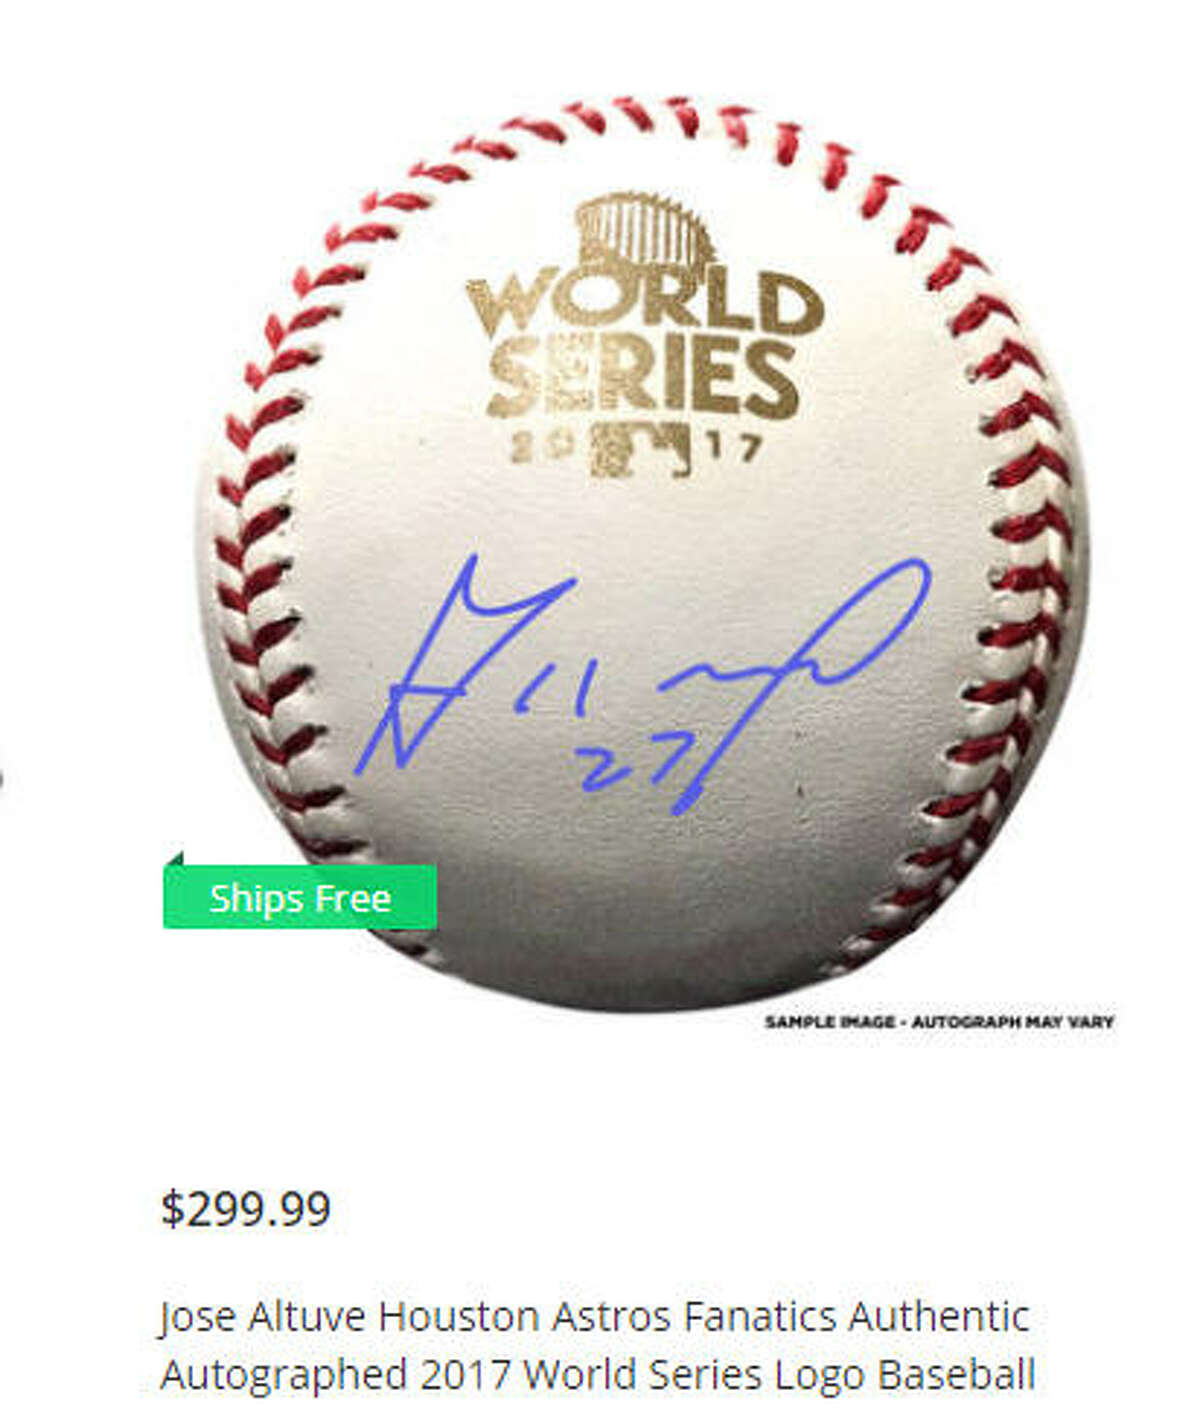 Get your very own Jose Altuve autographed ball on theChron Fanatics page.